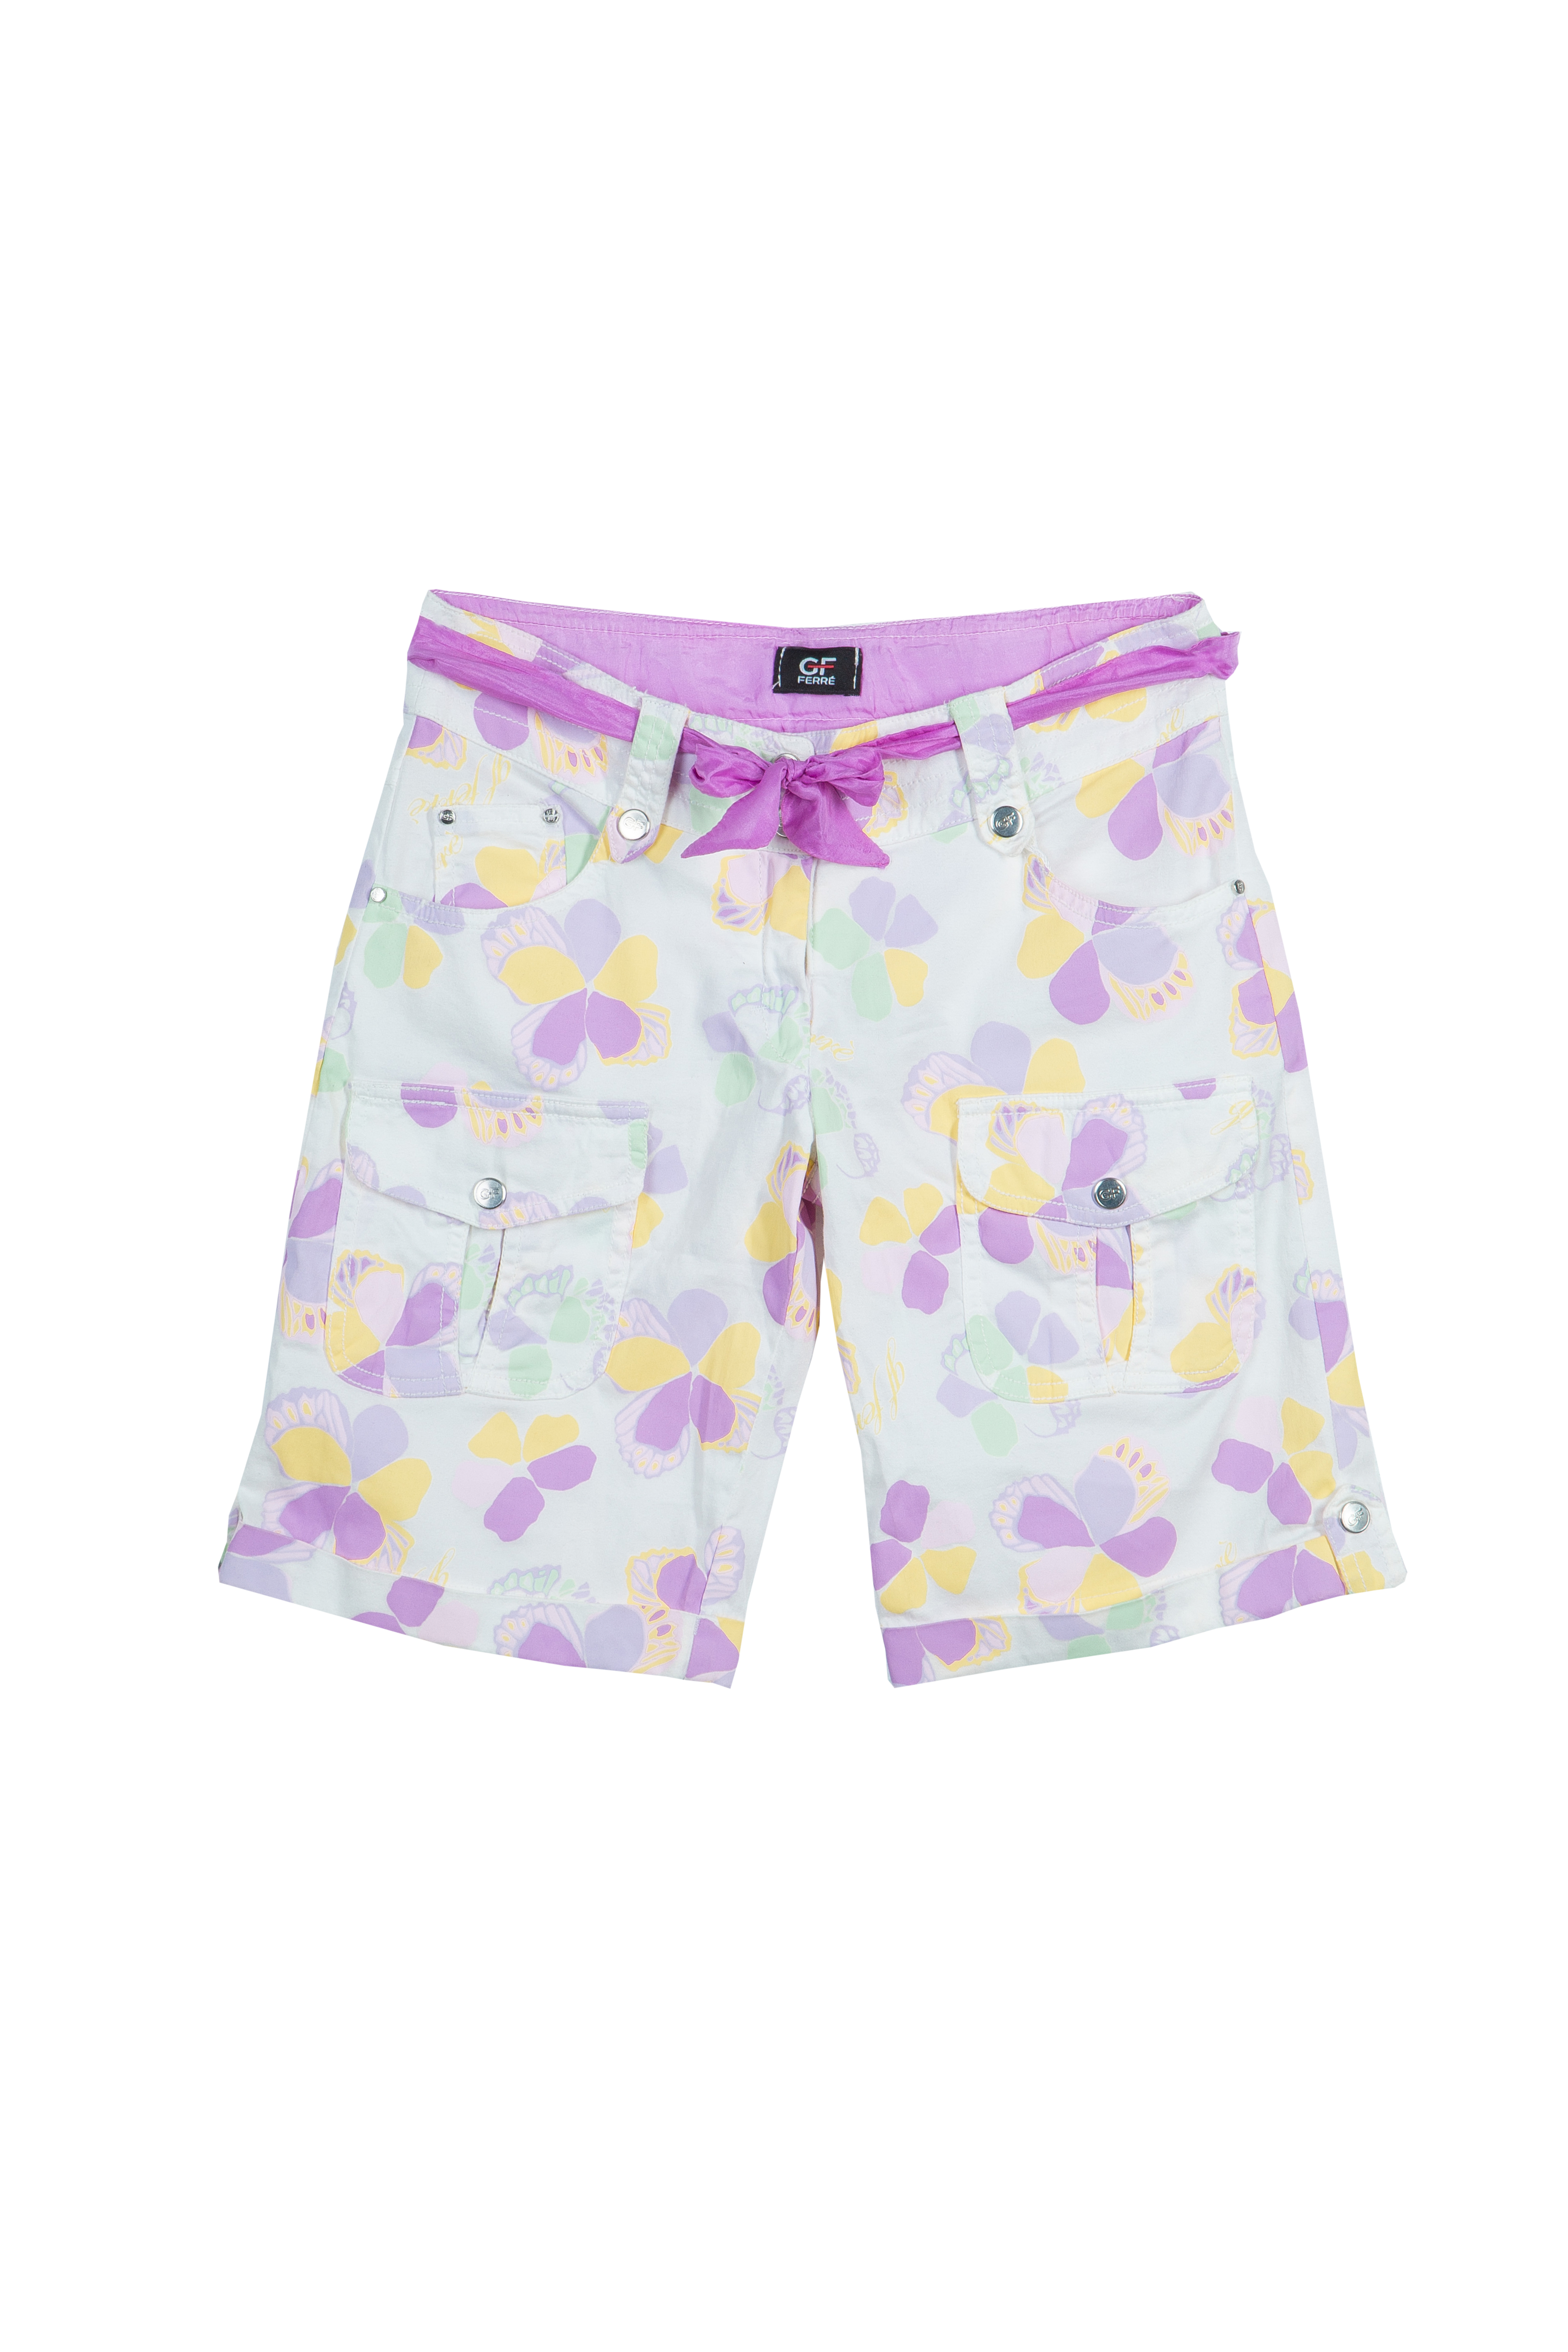 GF Ferre_ Floral Print Belted Bermuda Shorts_ 11 to12 Yrs_ AED337